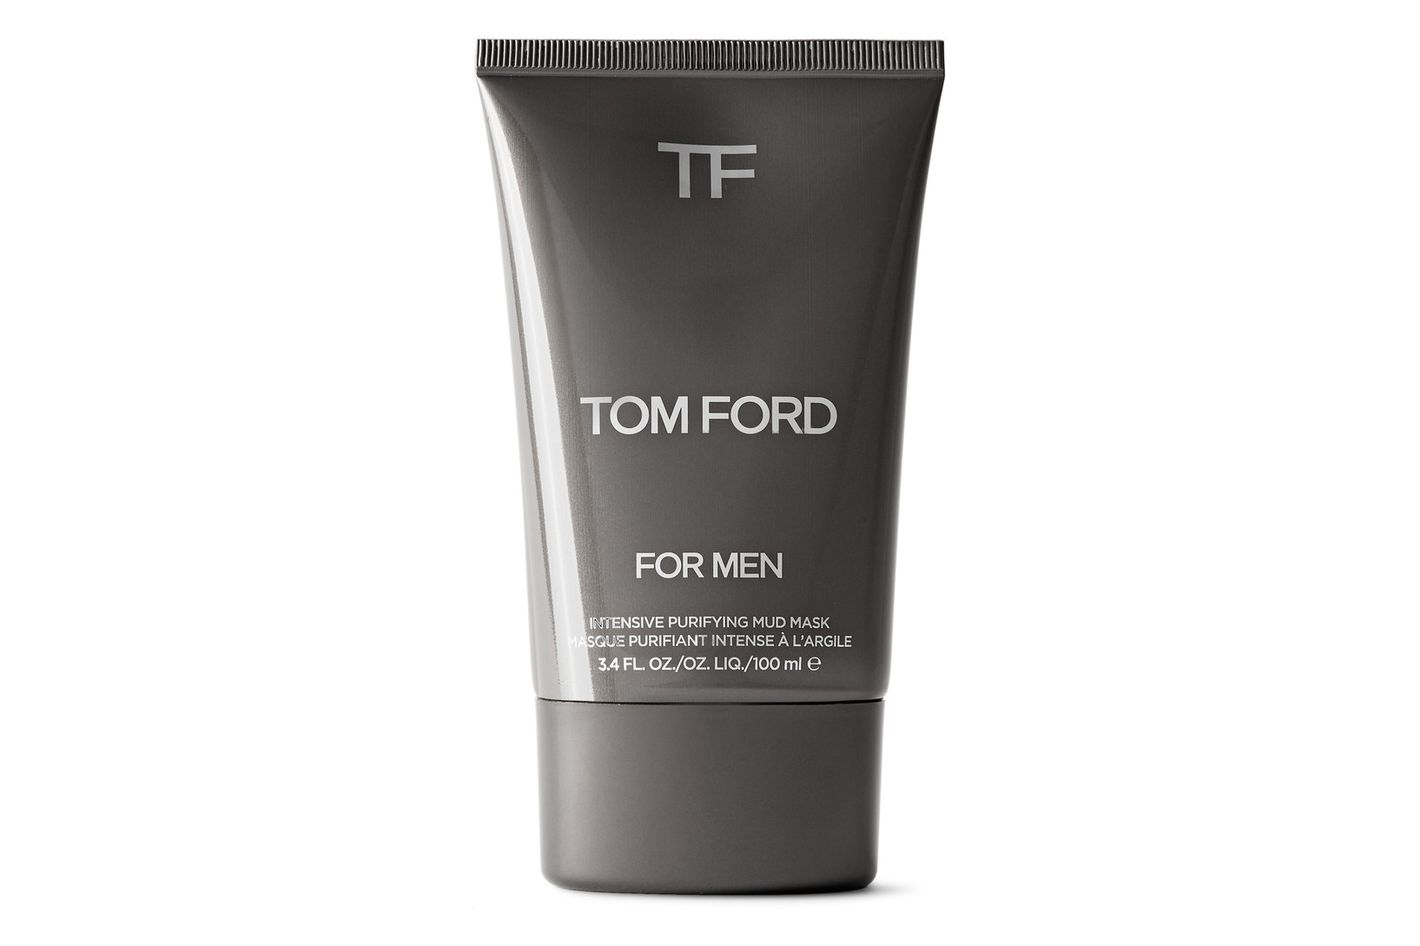 Tom Ford Intensive Purifying Mud Mask